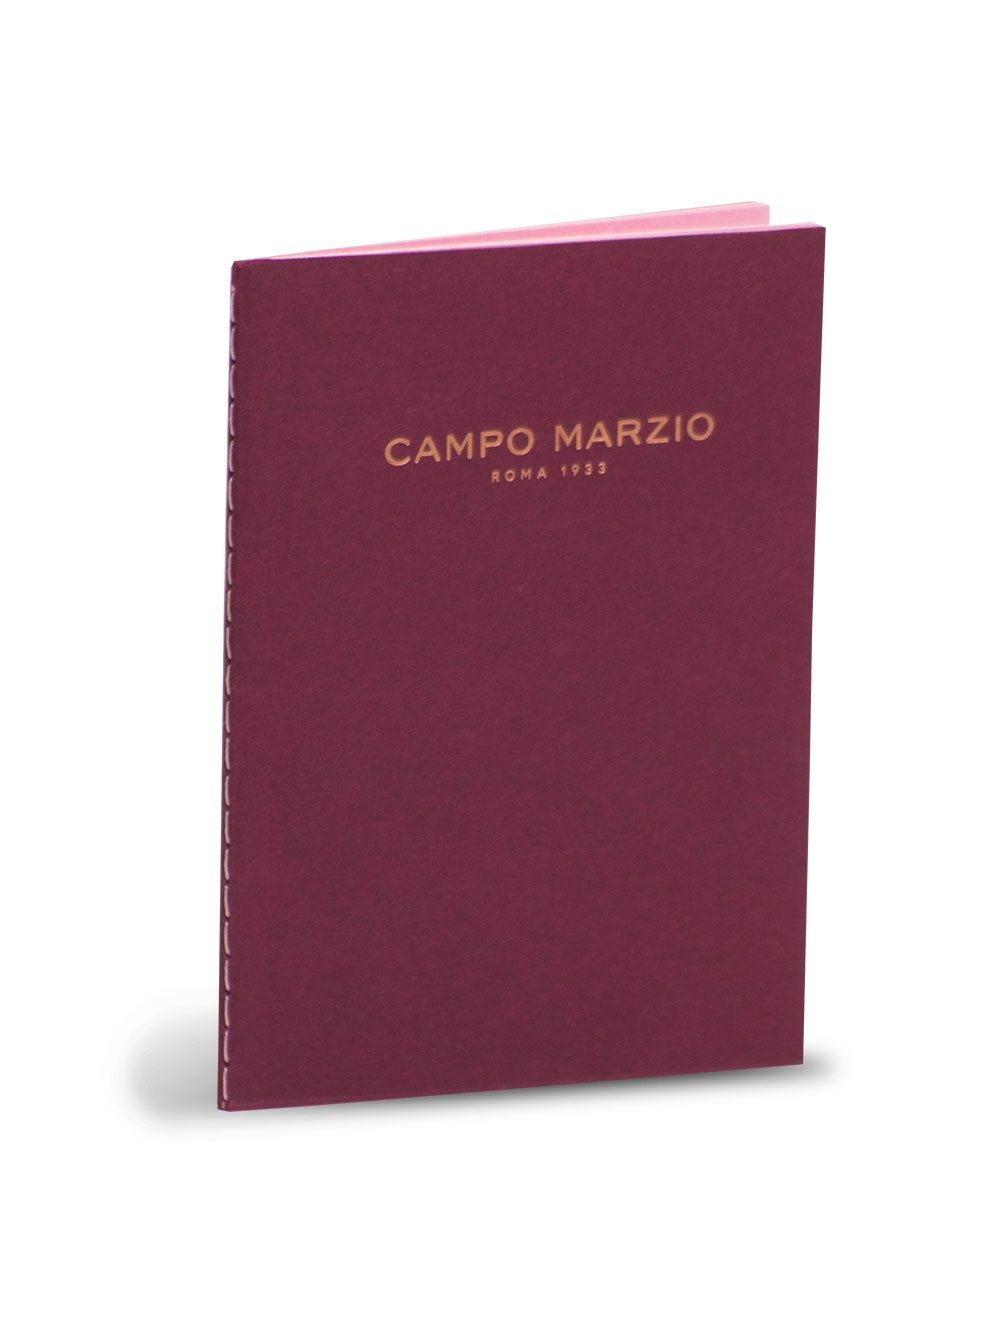 Medium Book Campo Marzio